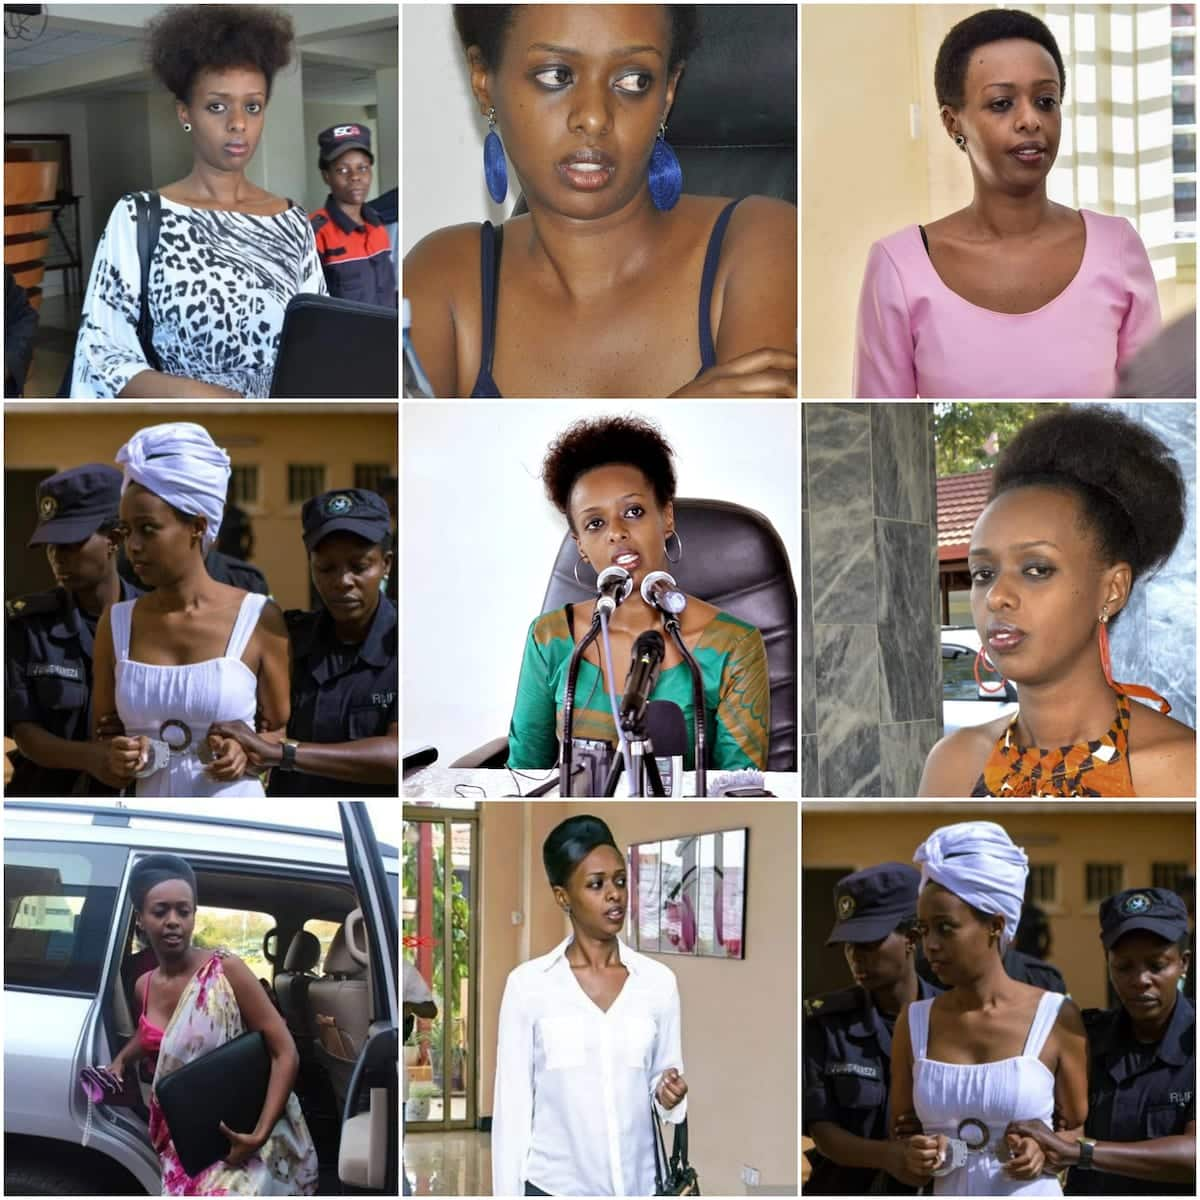 Who is diane shima rwigara diane shima rwigara father diane shima rwigara biography